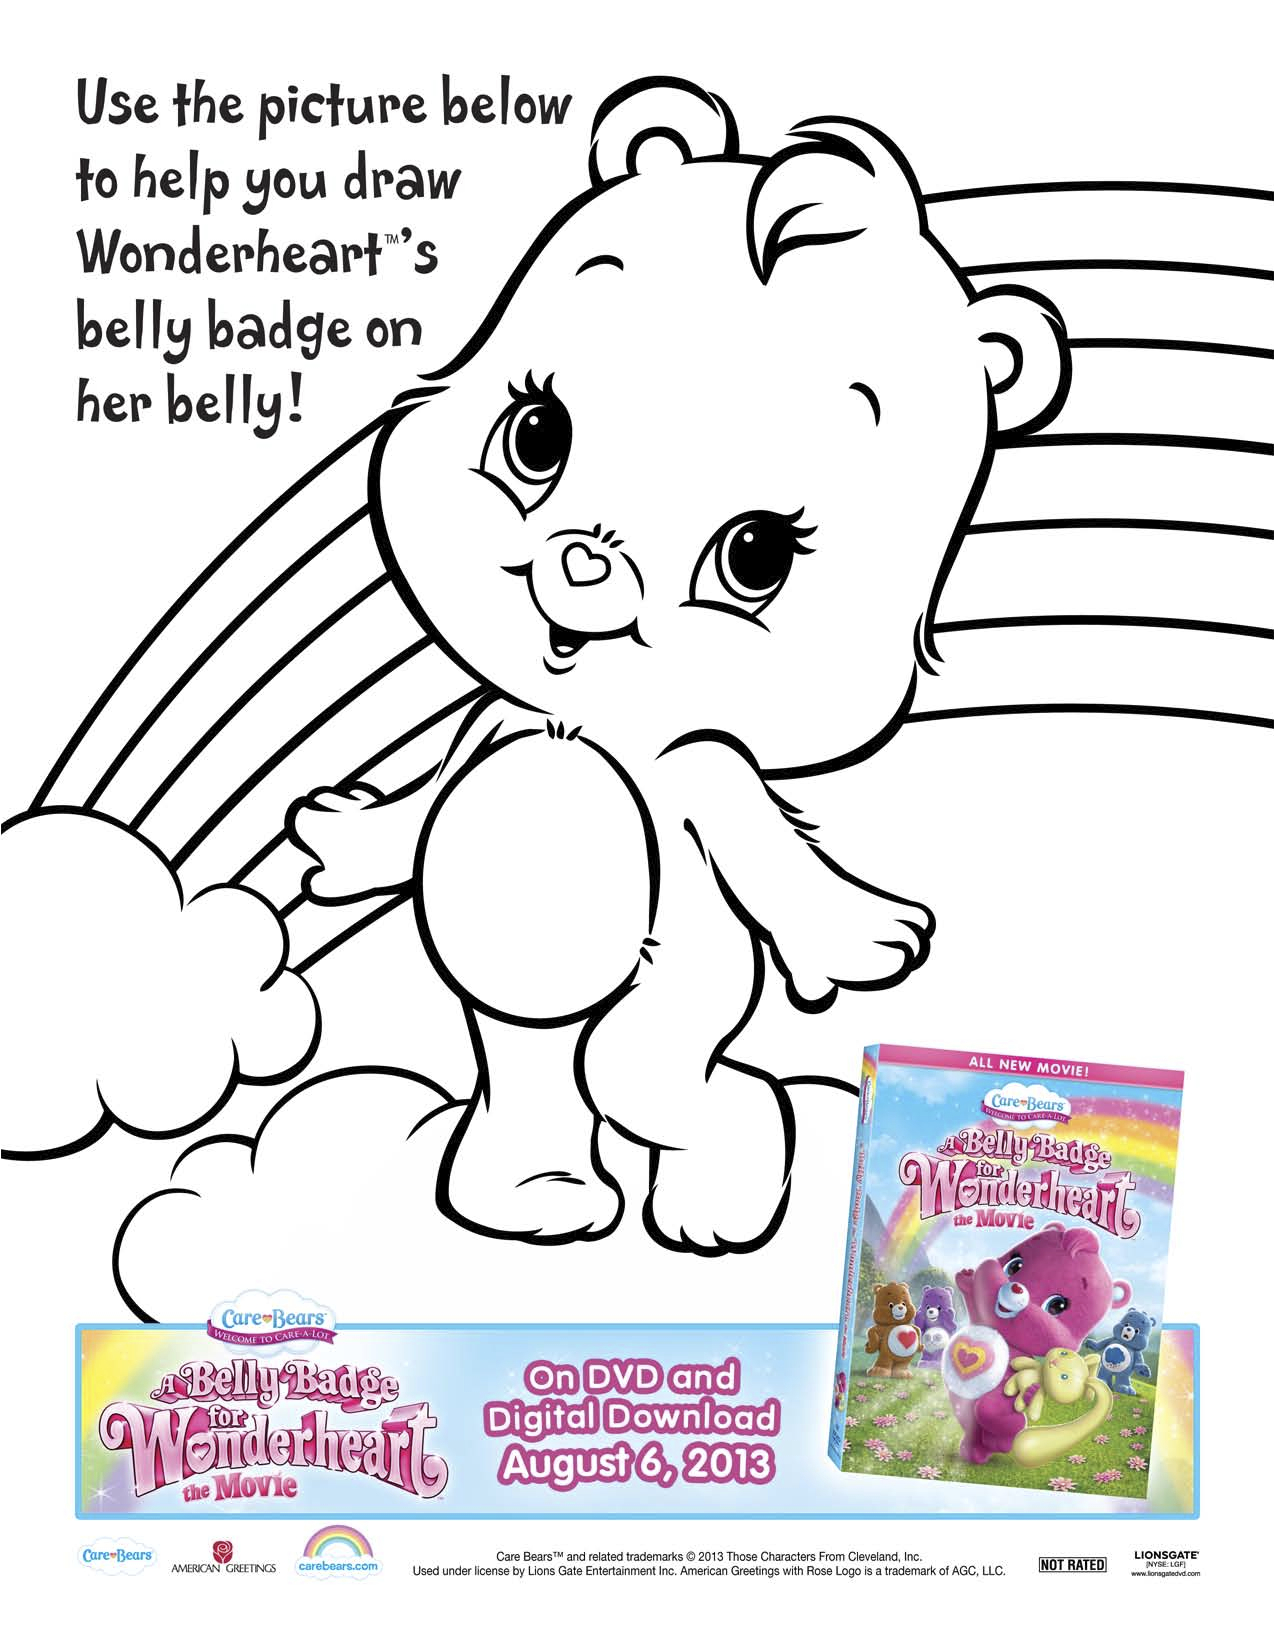 Printable coloring pages care bears - Care Bears A Belly Badge For Wonderheart Activity Sheet